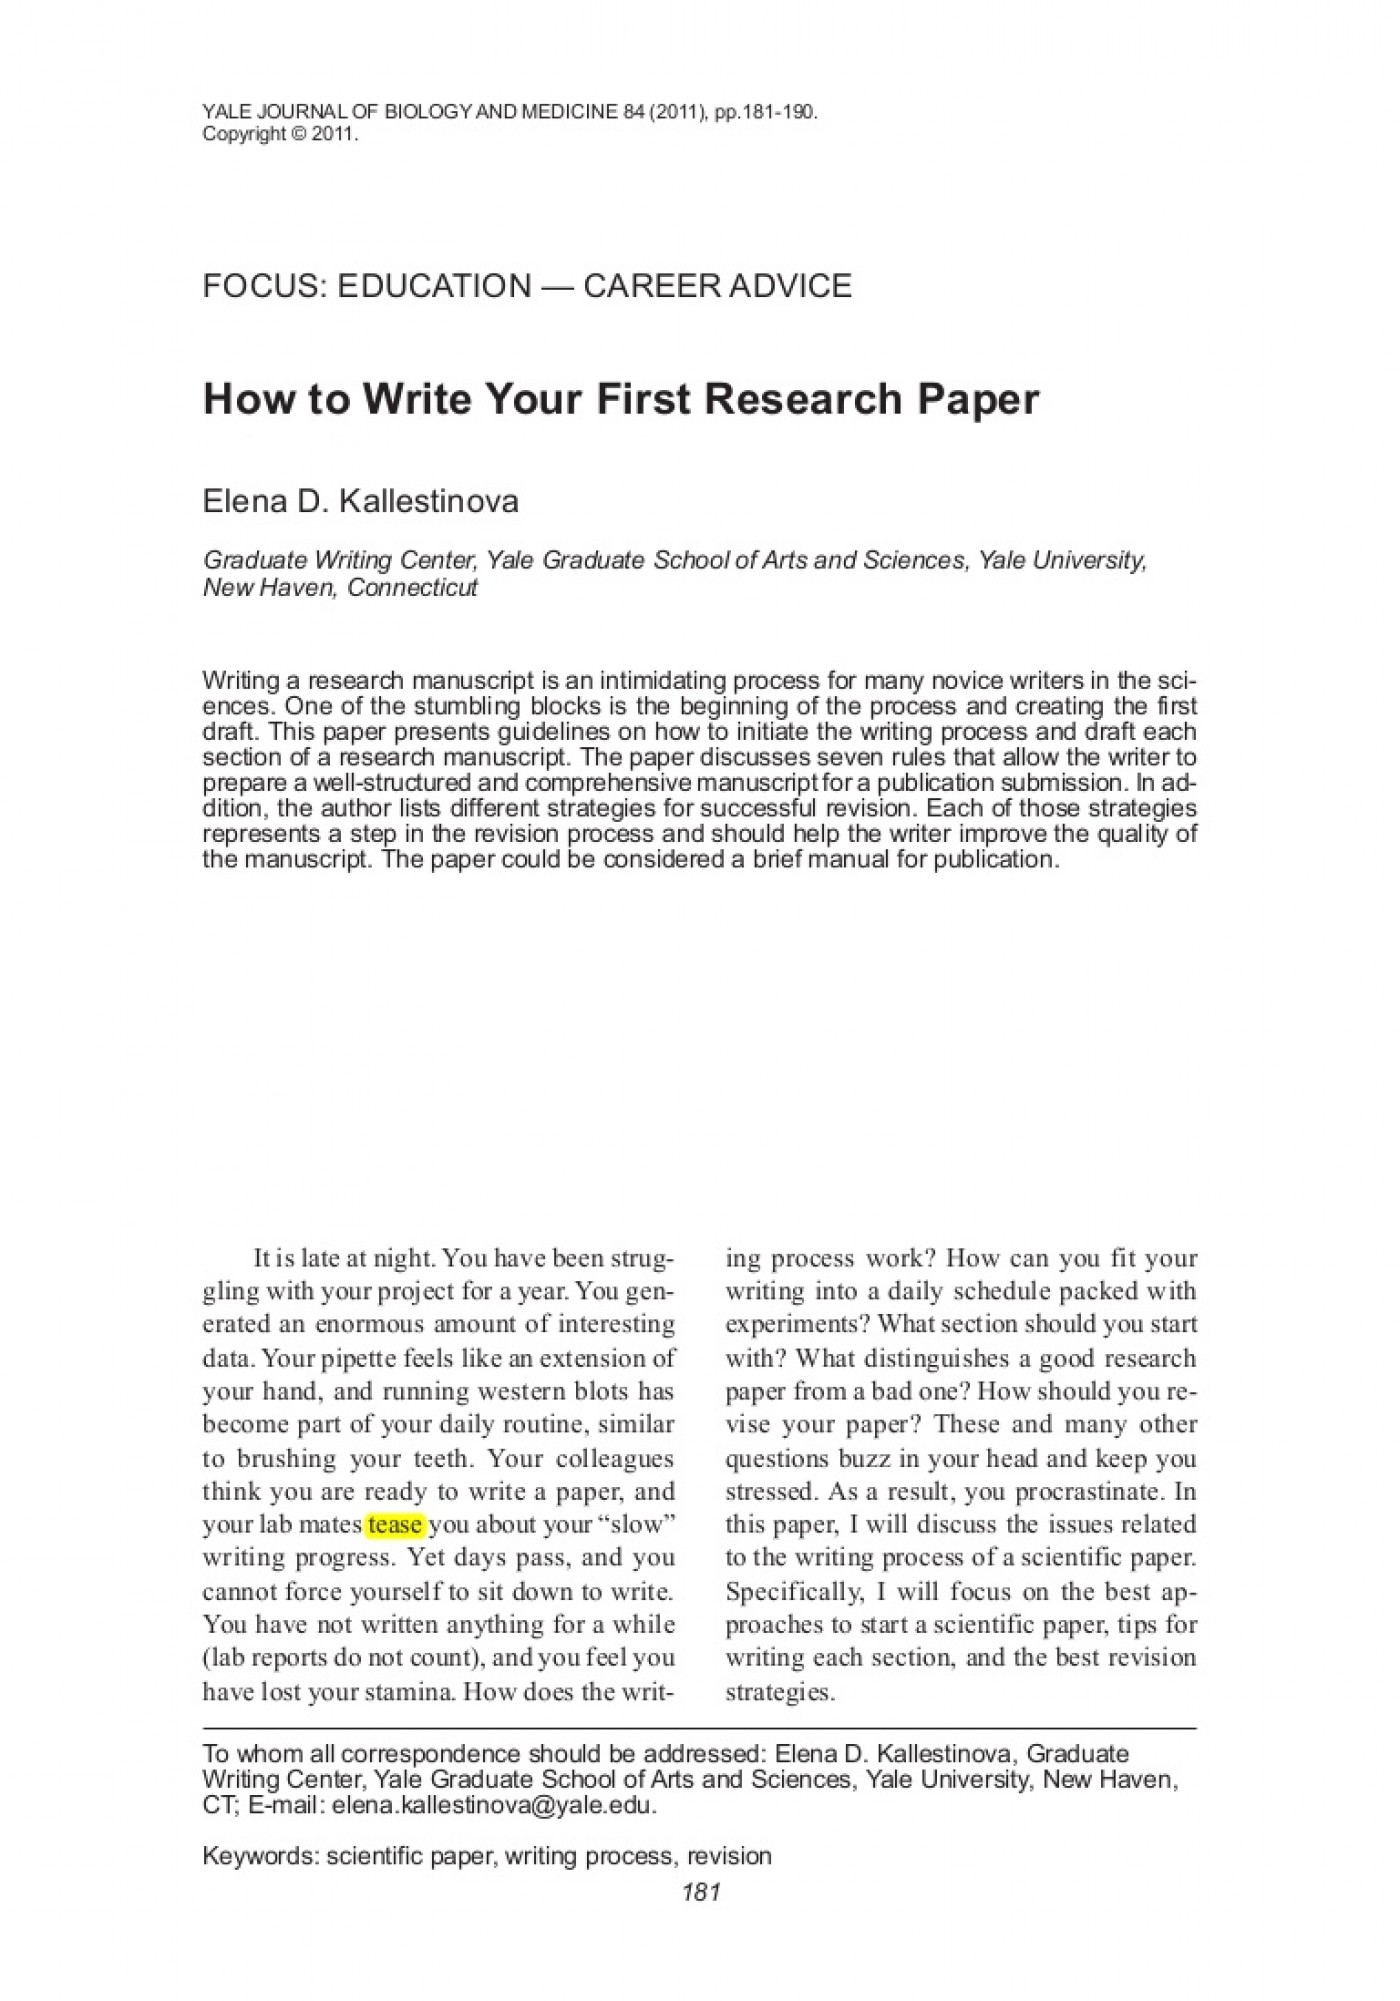 008 Research Paper How To Write Papers Howtowriteyourfirstresearchpaper Lva1 App6891 Thumbnail Outstanding A Proposal Or Thesis In Apa Format Introduction Pdf 1400